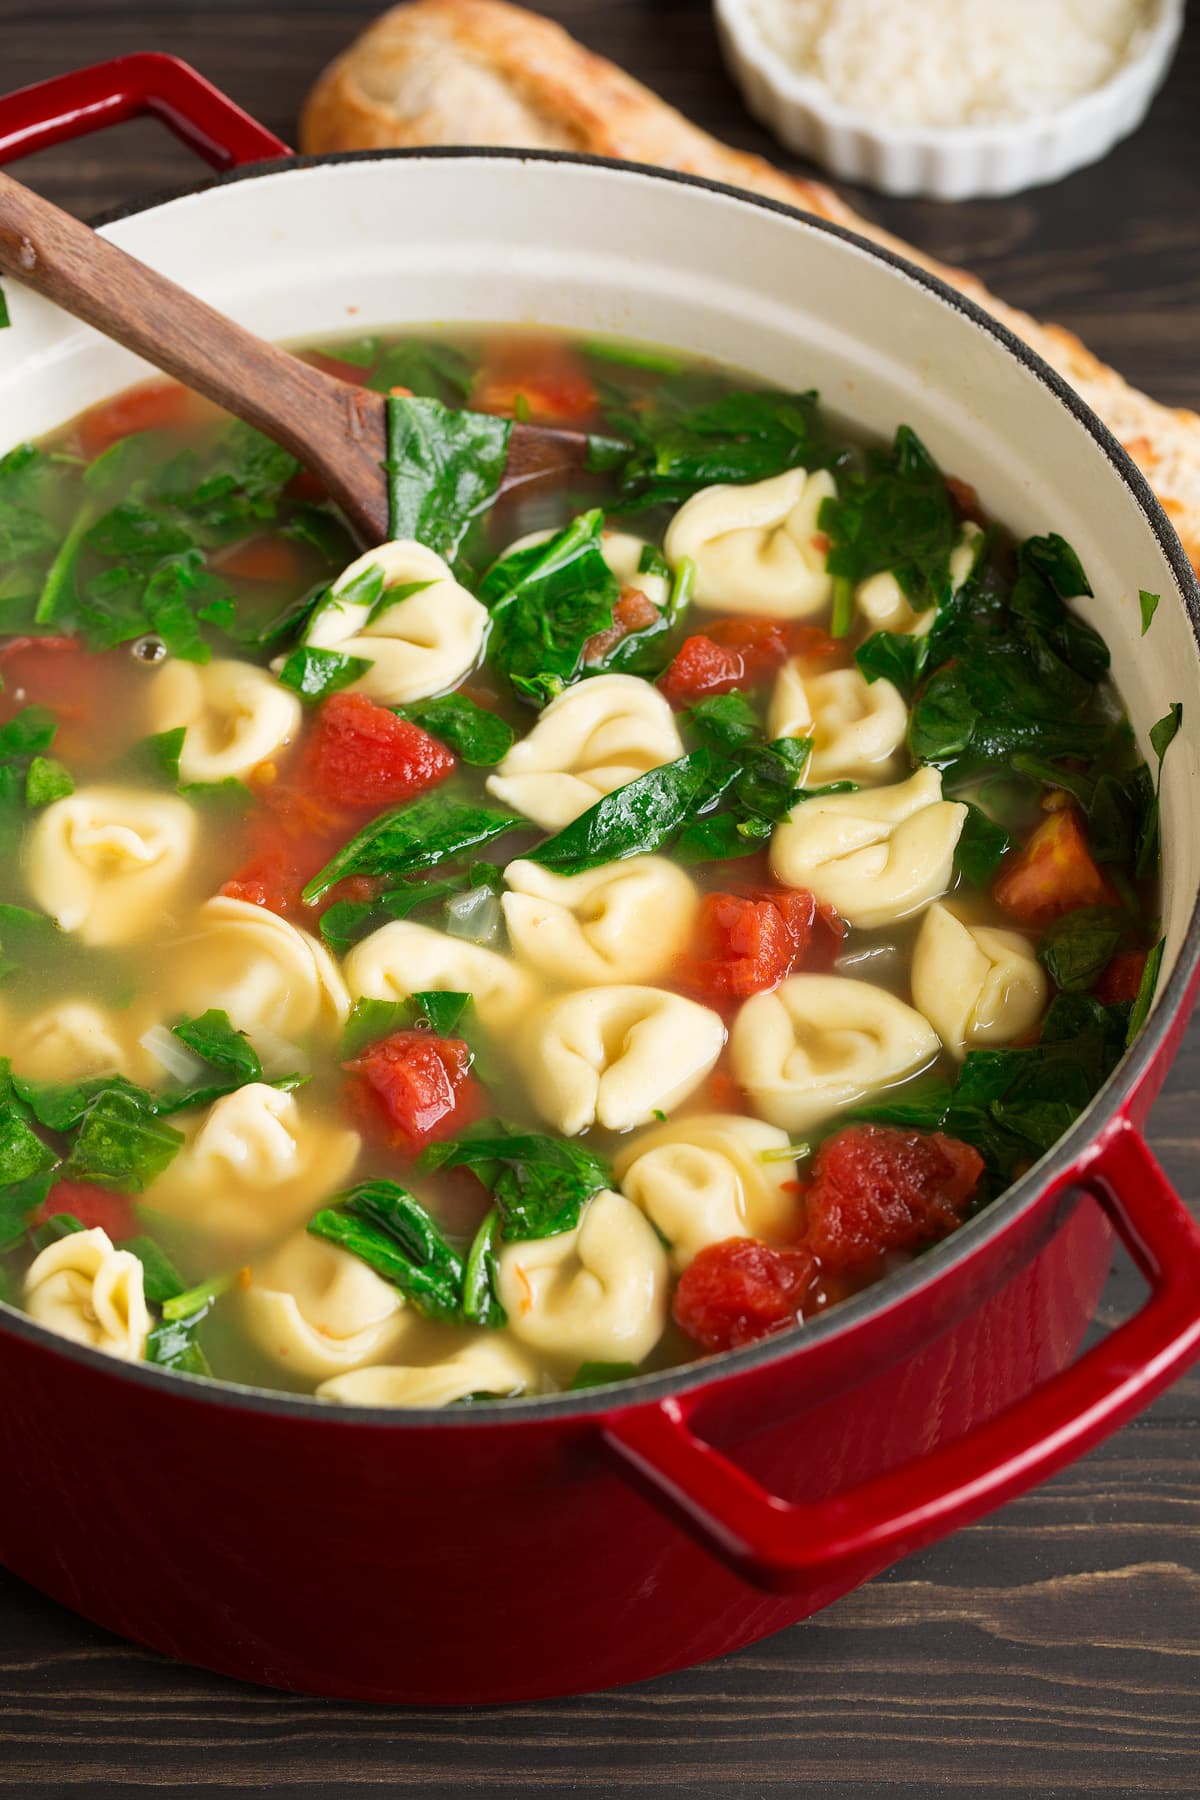 Close up image of tortellini soup in a red pot set over a wooden tabletop.